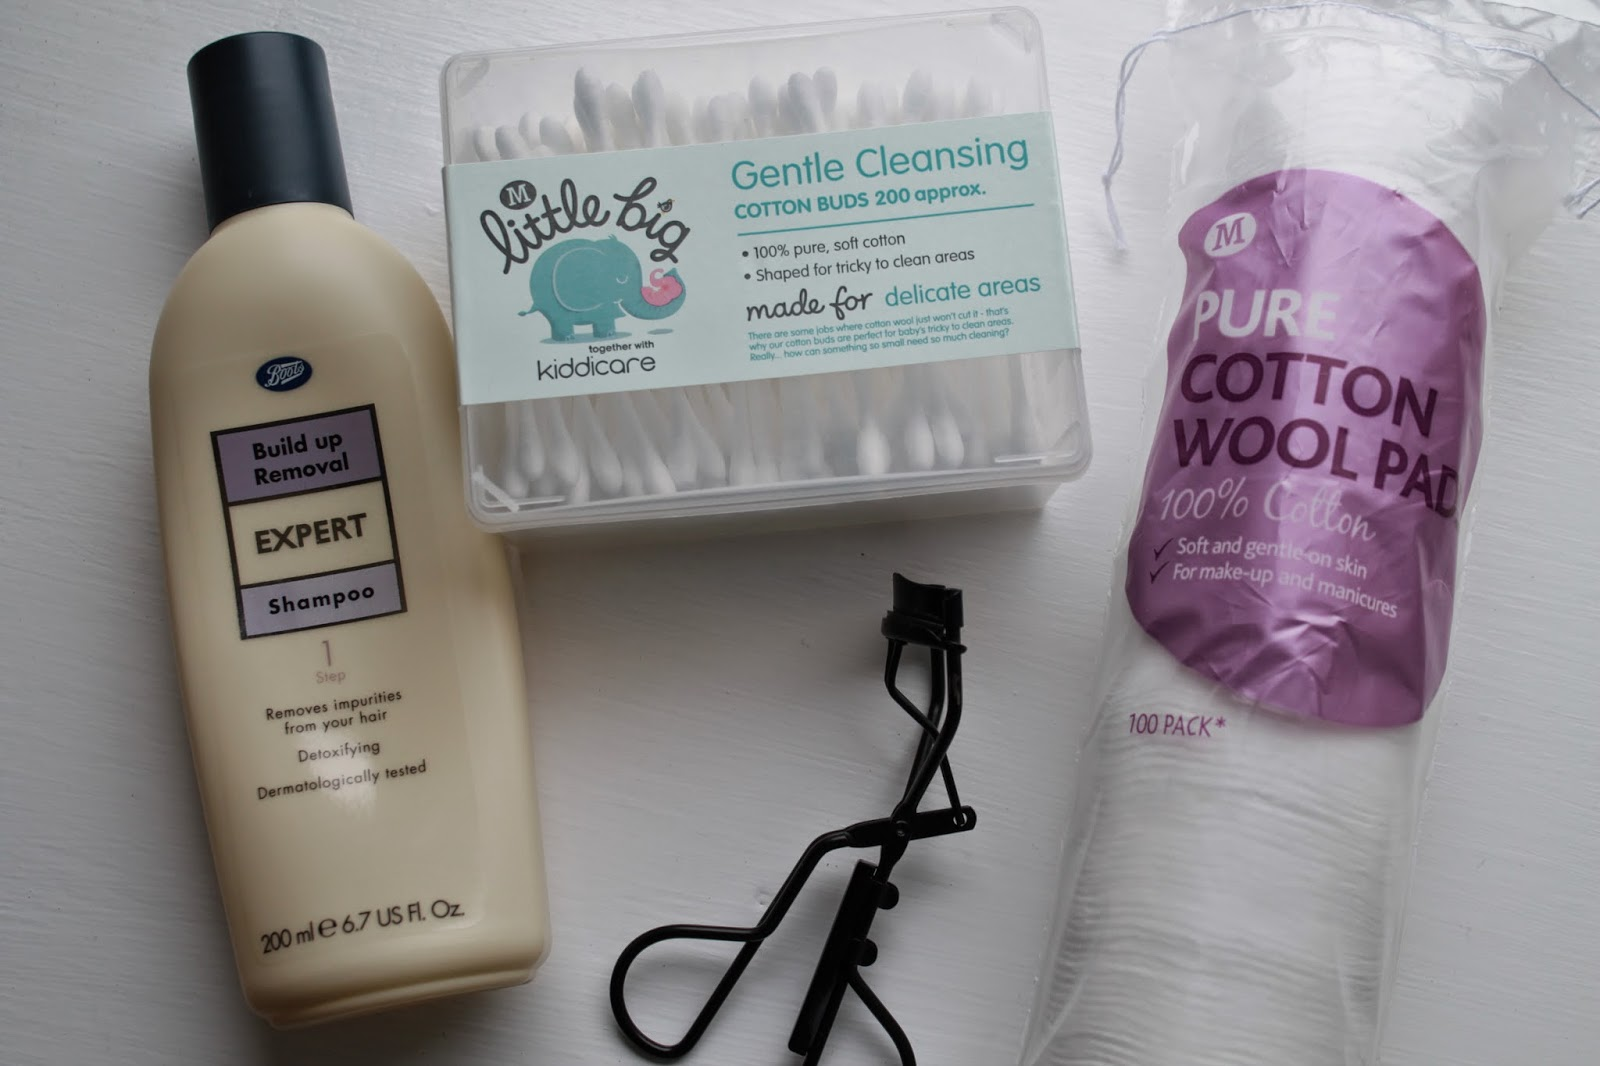 Build up Removal Shampoo, Cotton buds and pads, Eyelash curlers